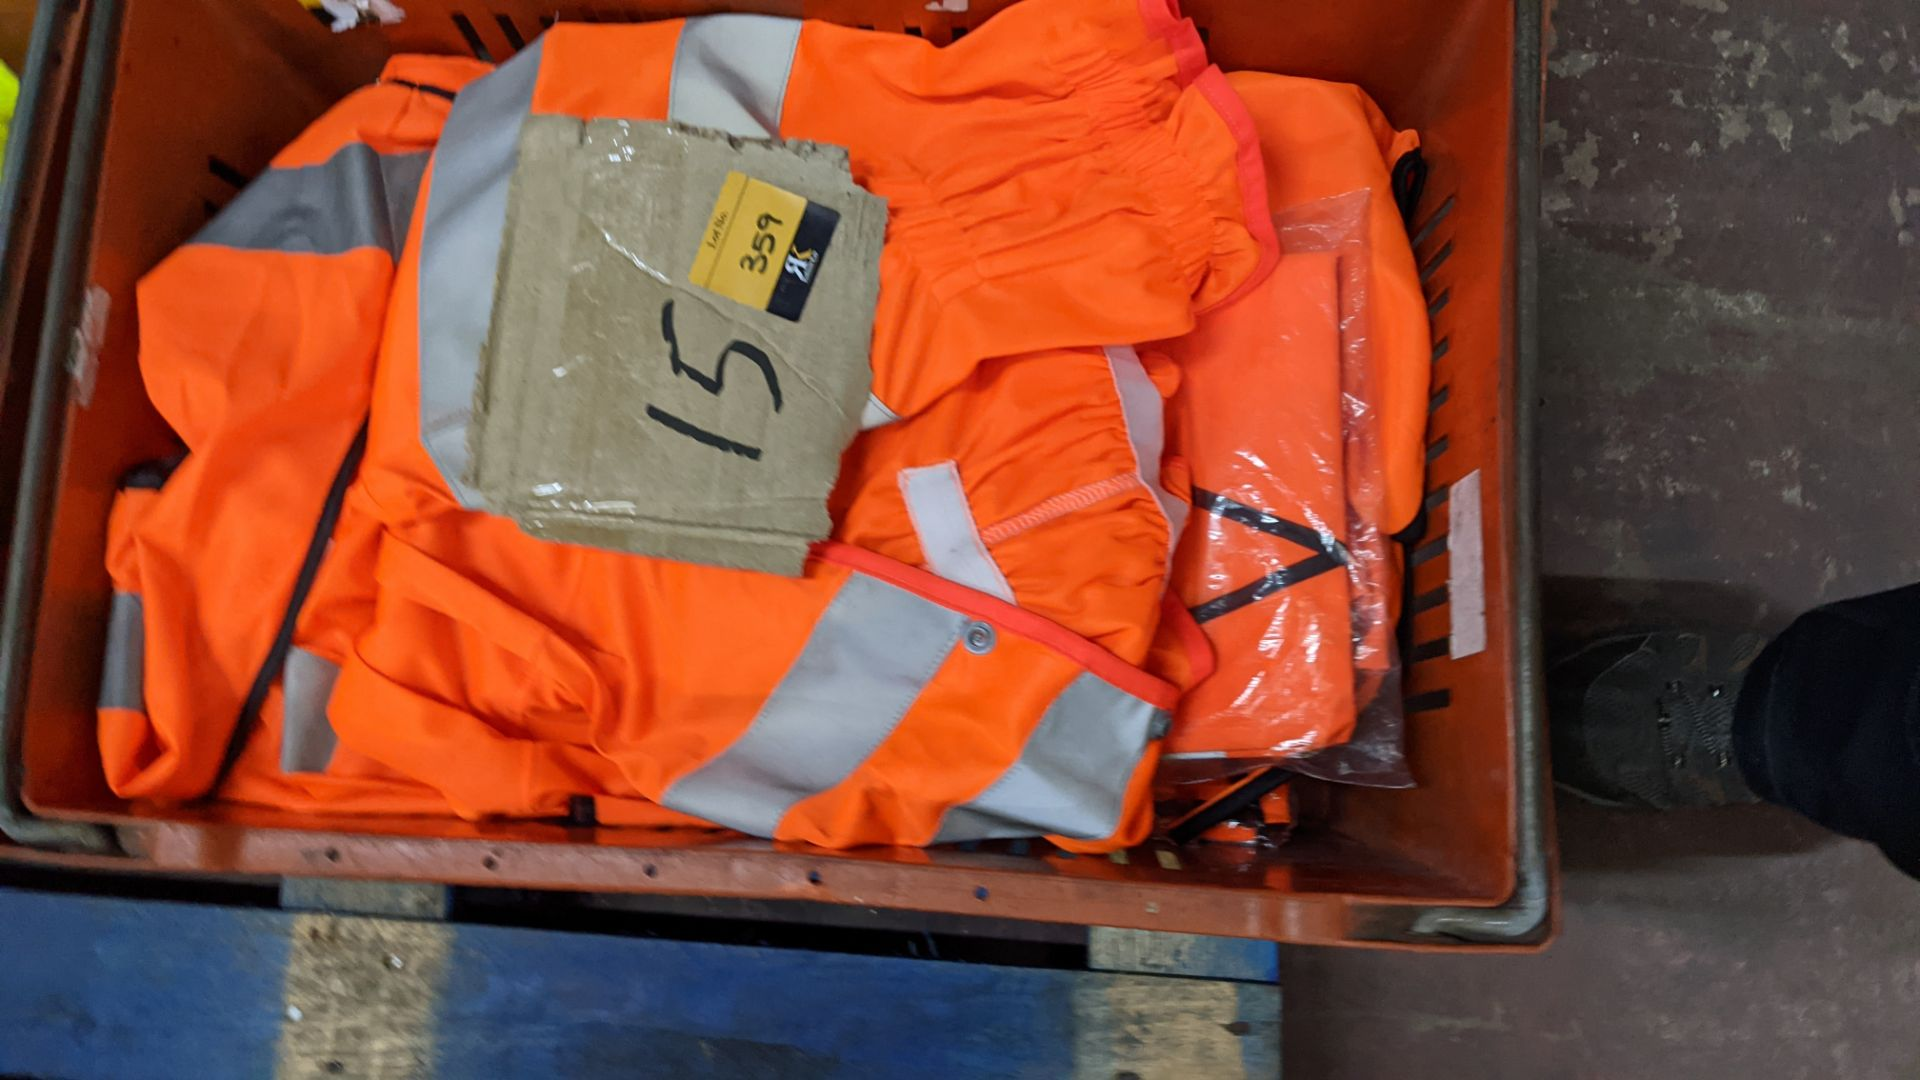 15 off assorted hi-vis garments - Image 2 of 4